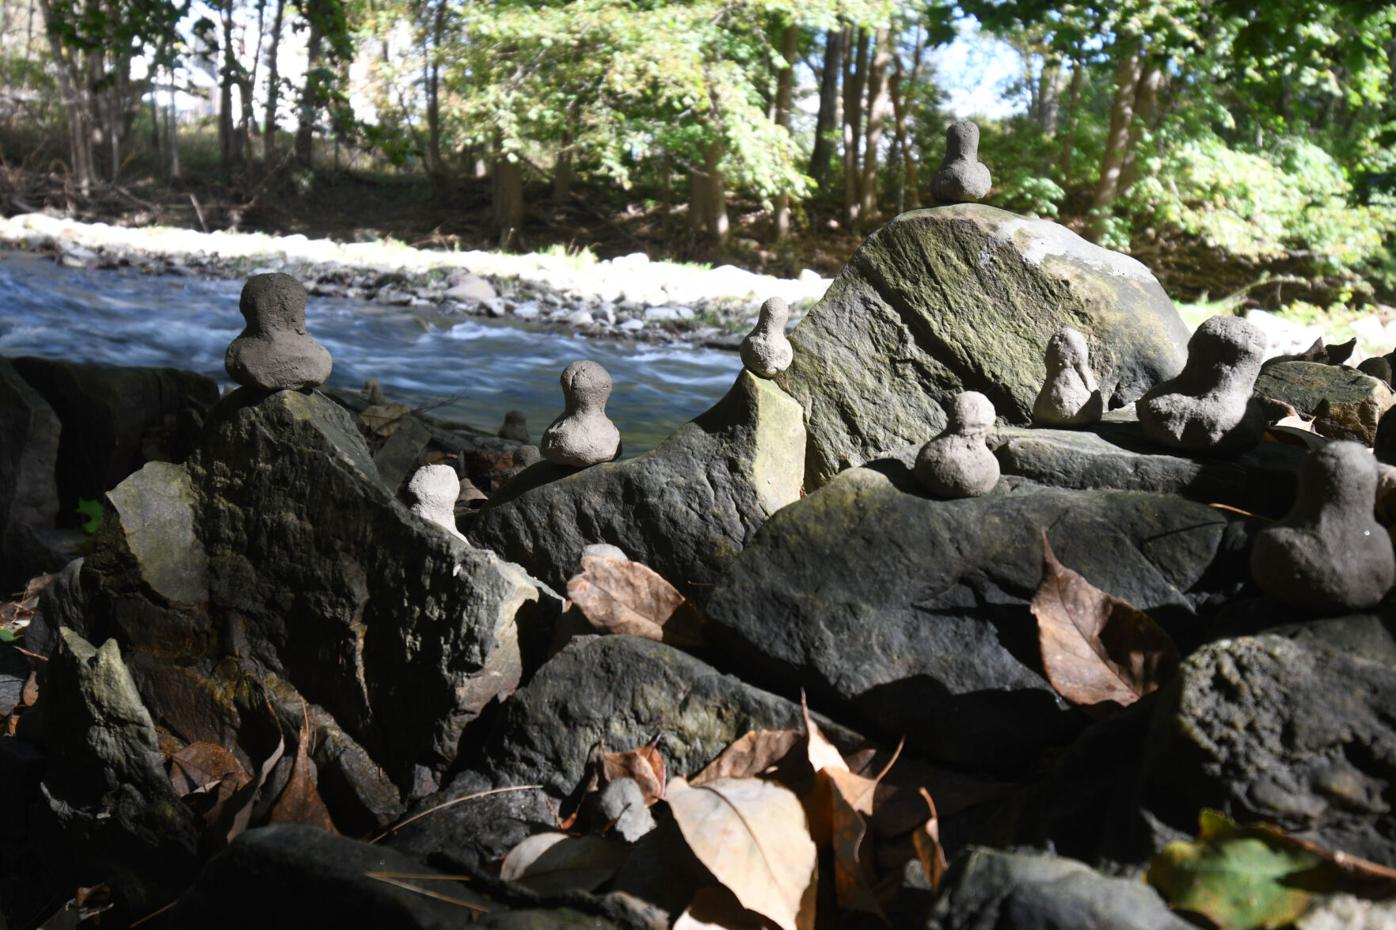 Figures sit on rocks along the river